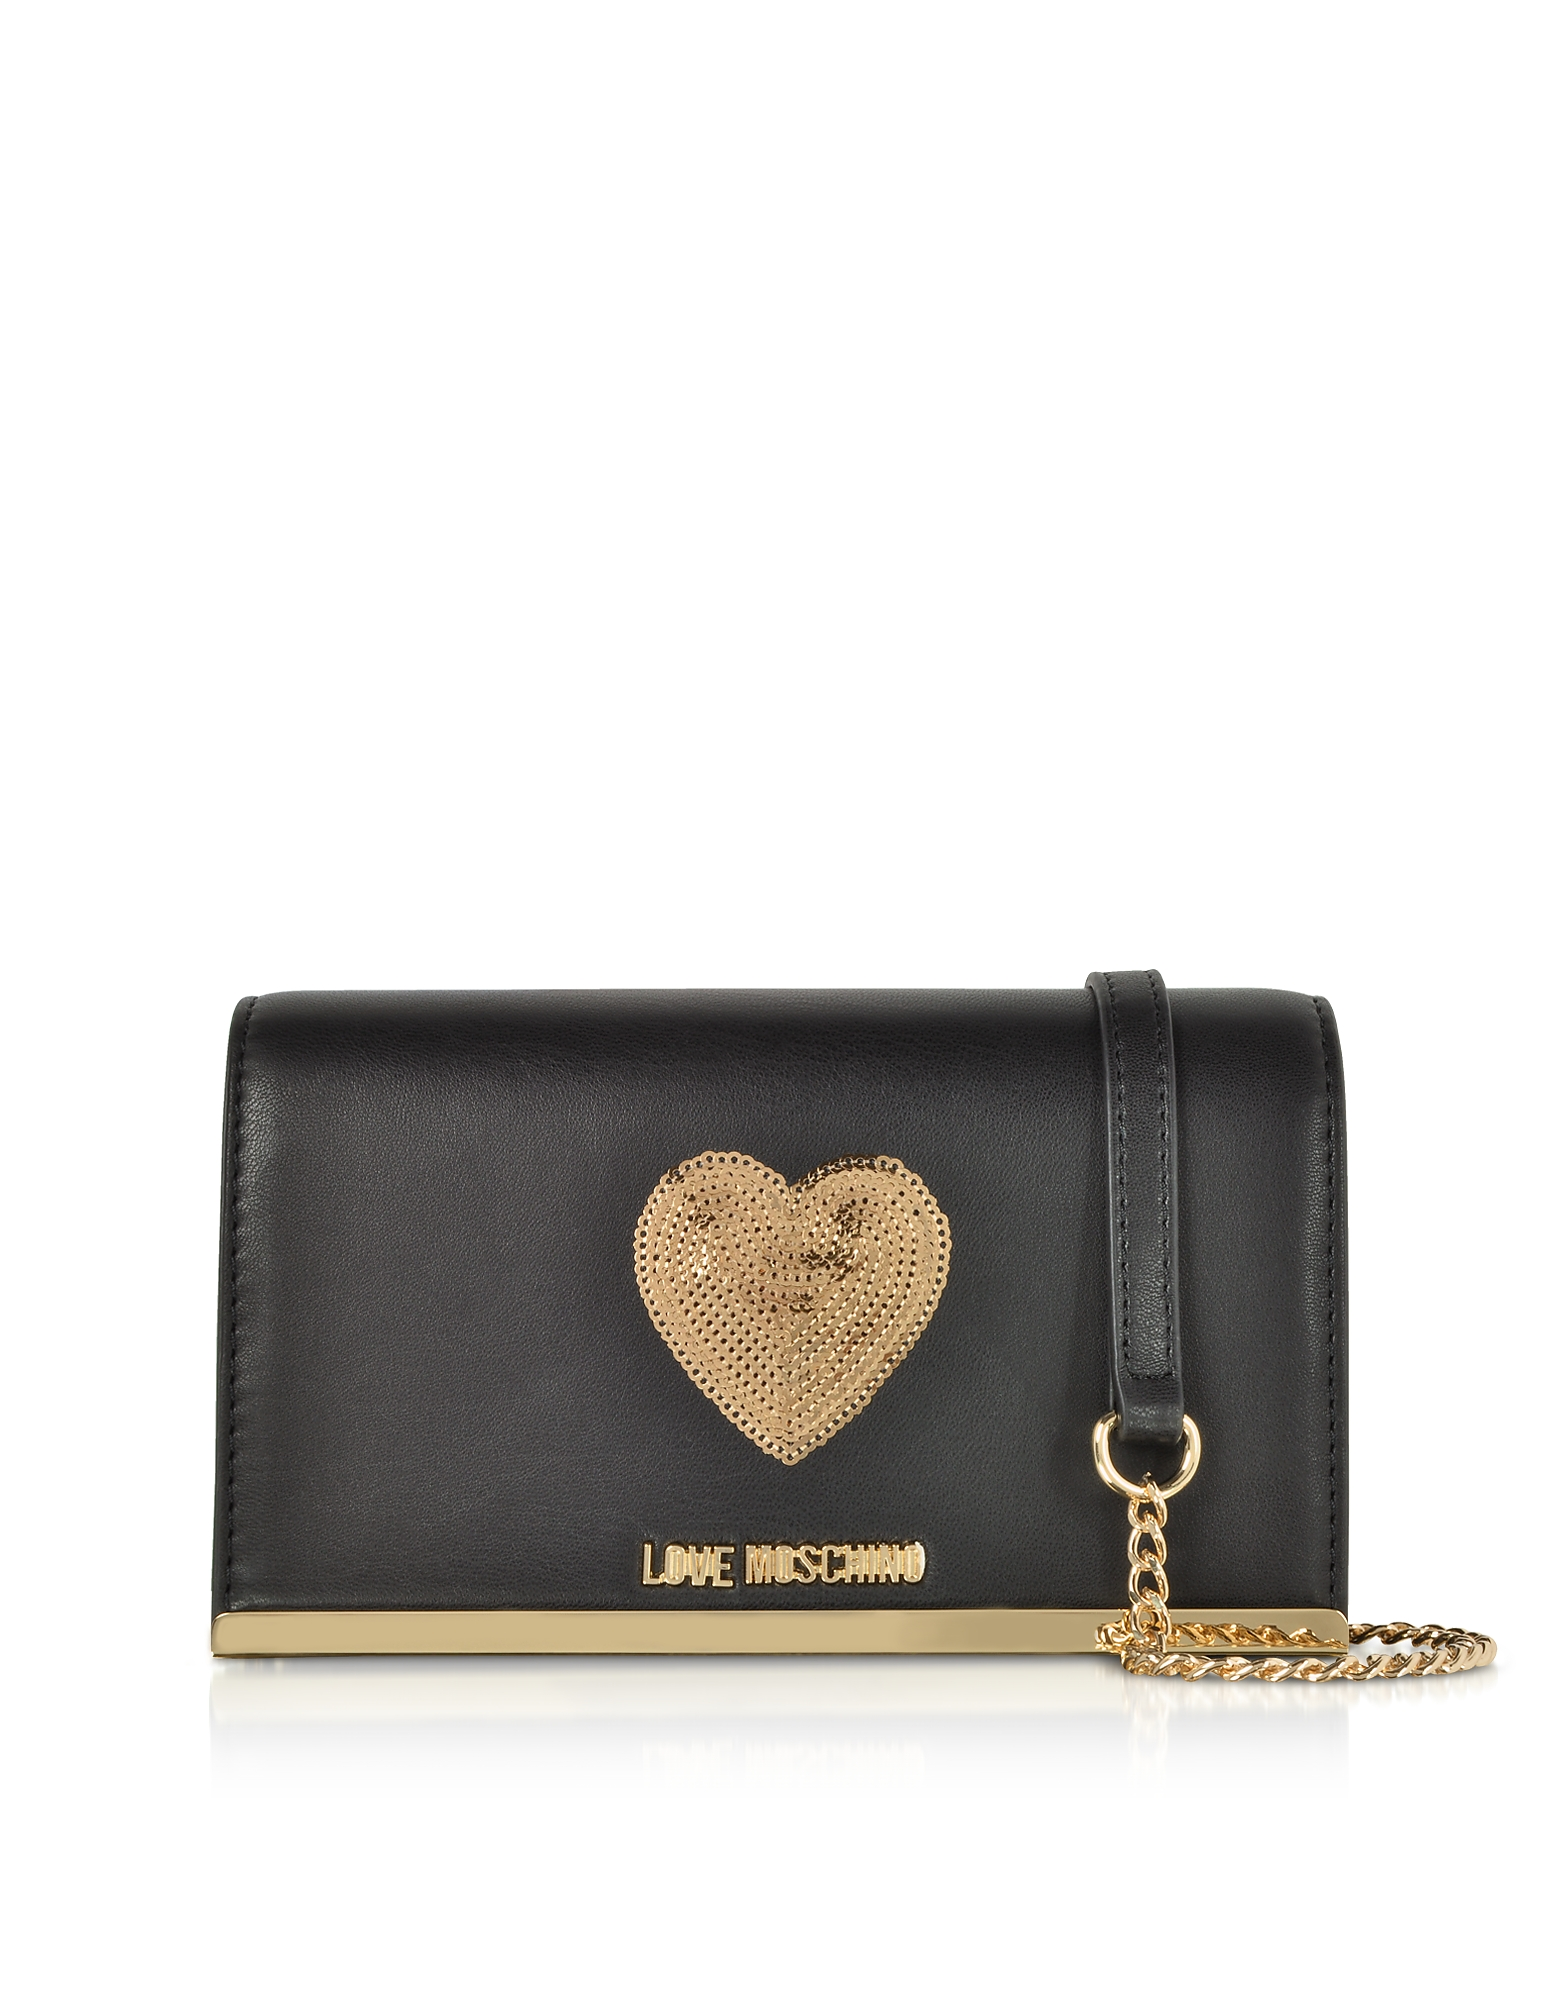 Love Moschino Handbags, Sequin Heart Eco Leather Clutch w/Chain Strap